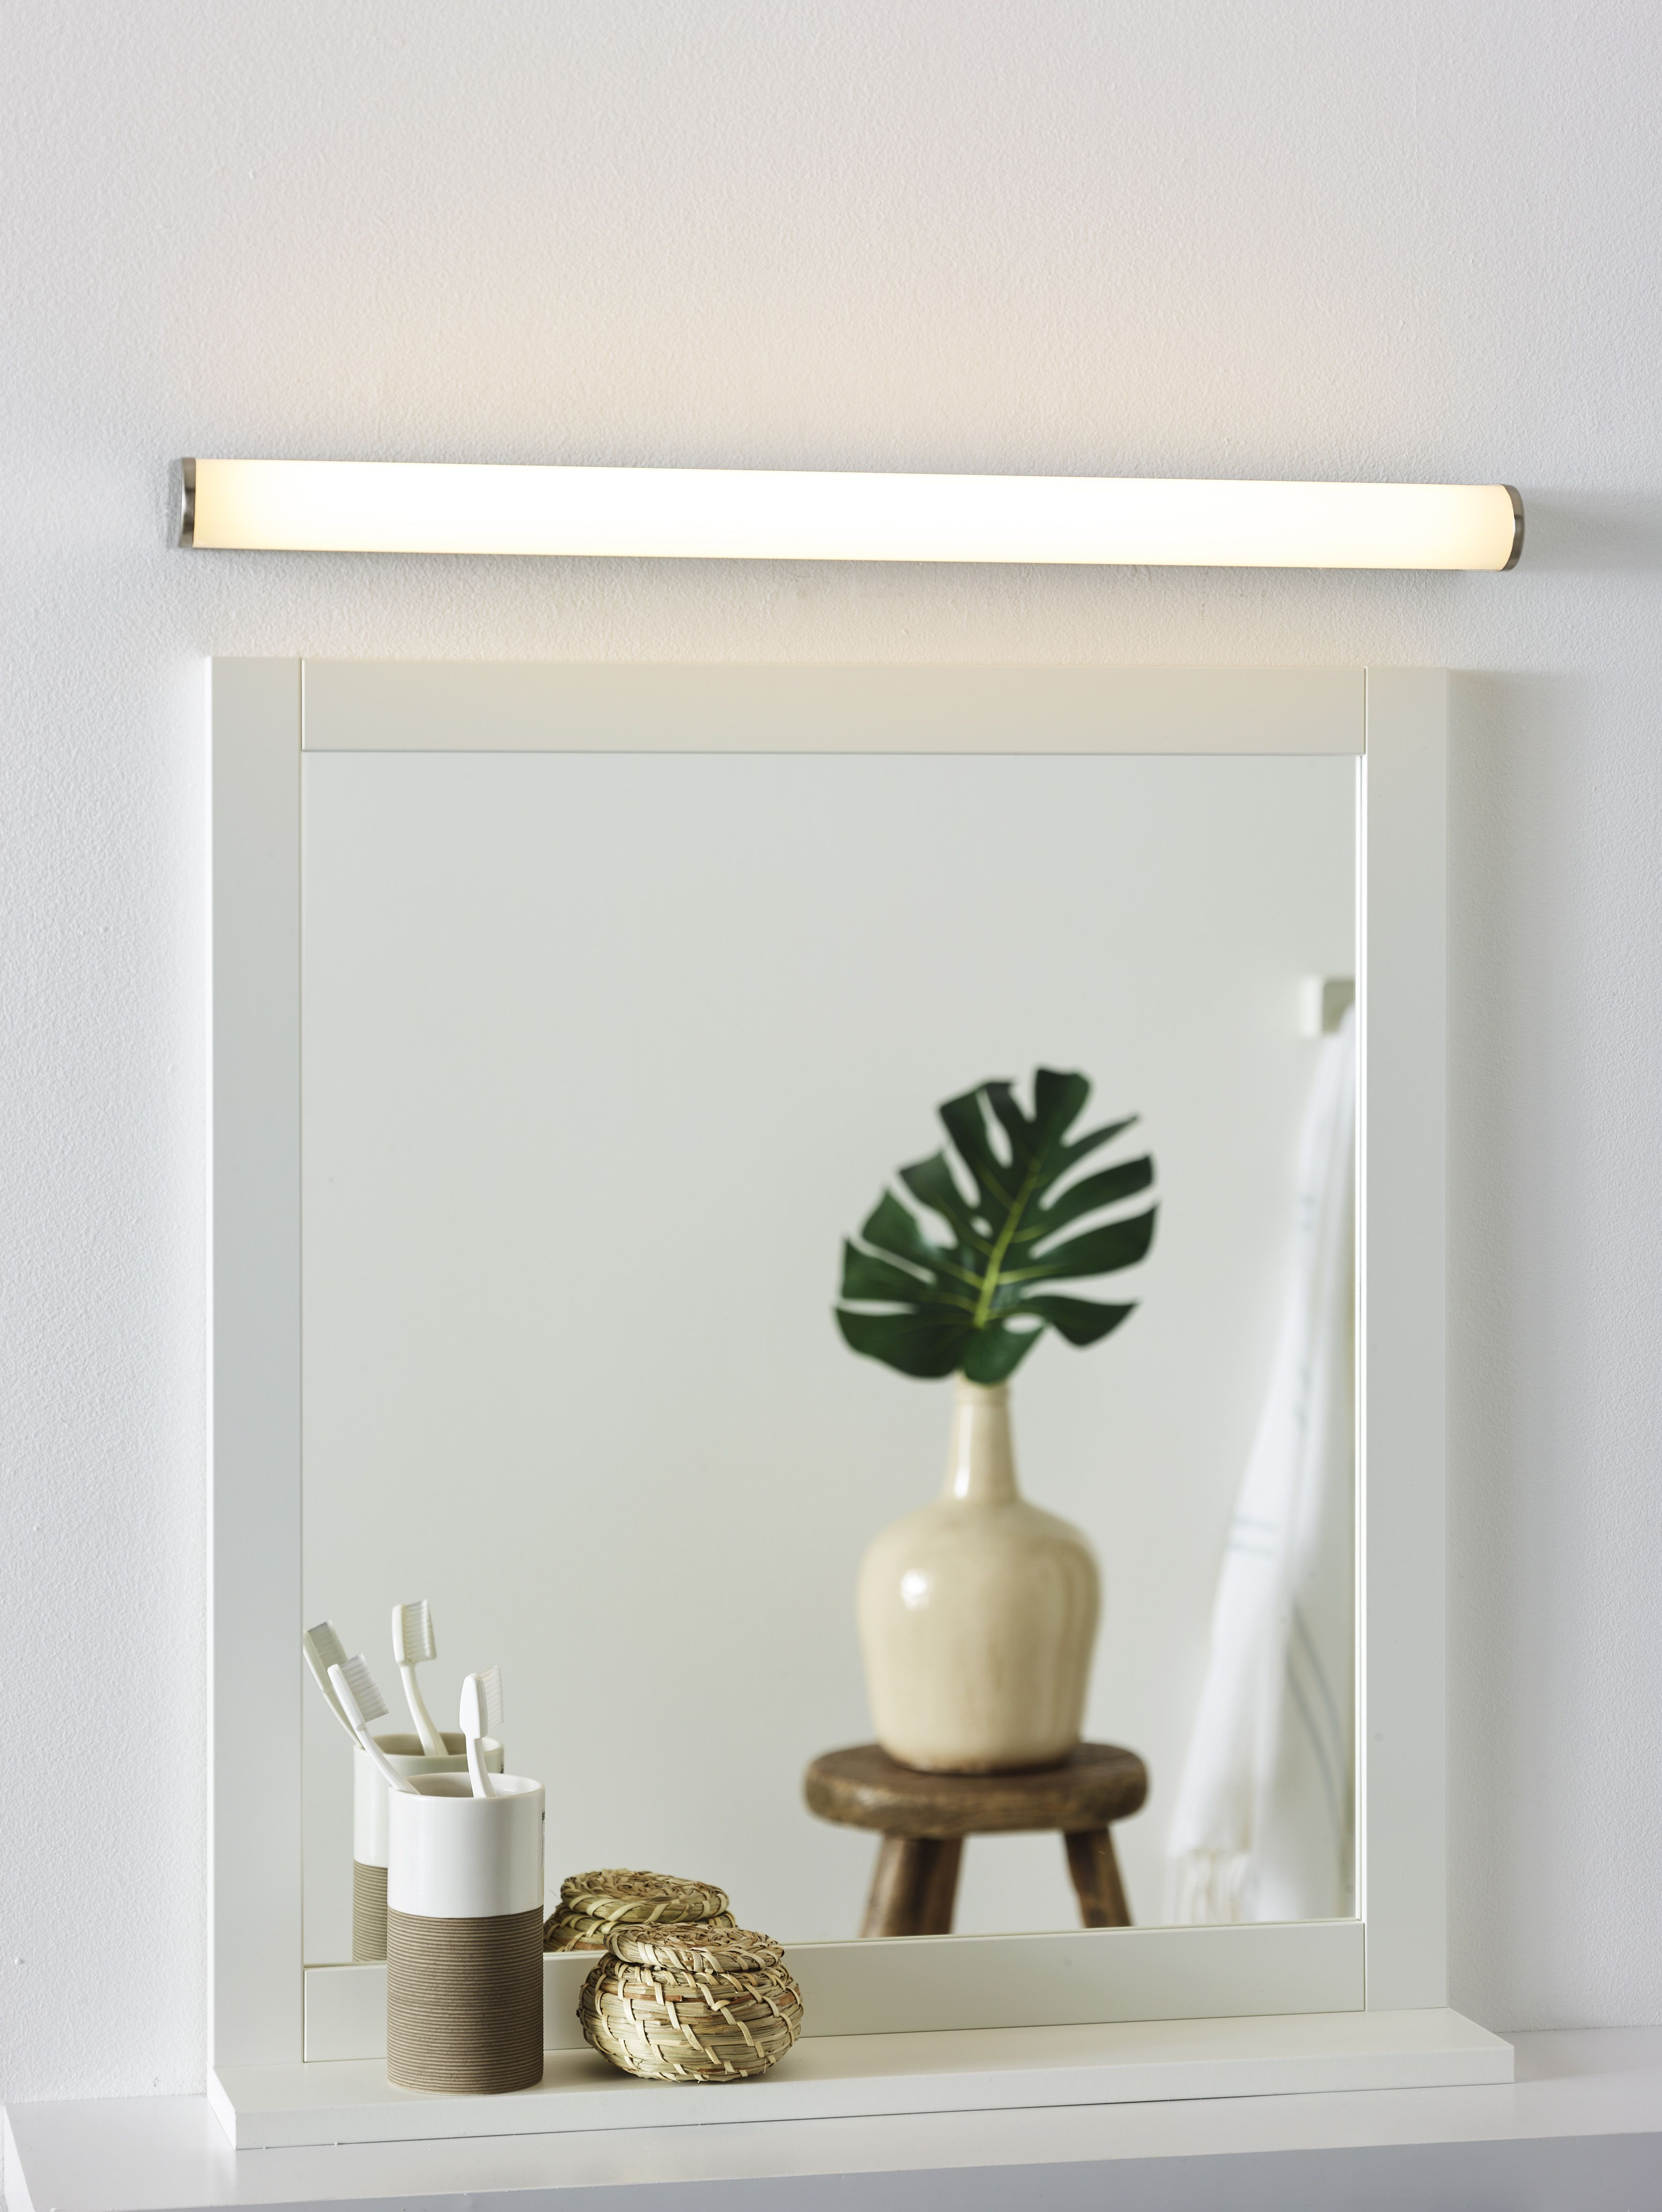 Lucide Jasper Mirror Light Bathroom Led 1x12w 3000k Ip44 Satin Chrome Spiegel Badkamer Badkamer Verlichting Lampen